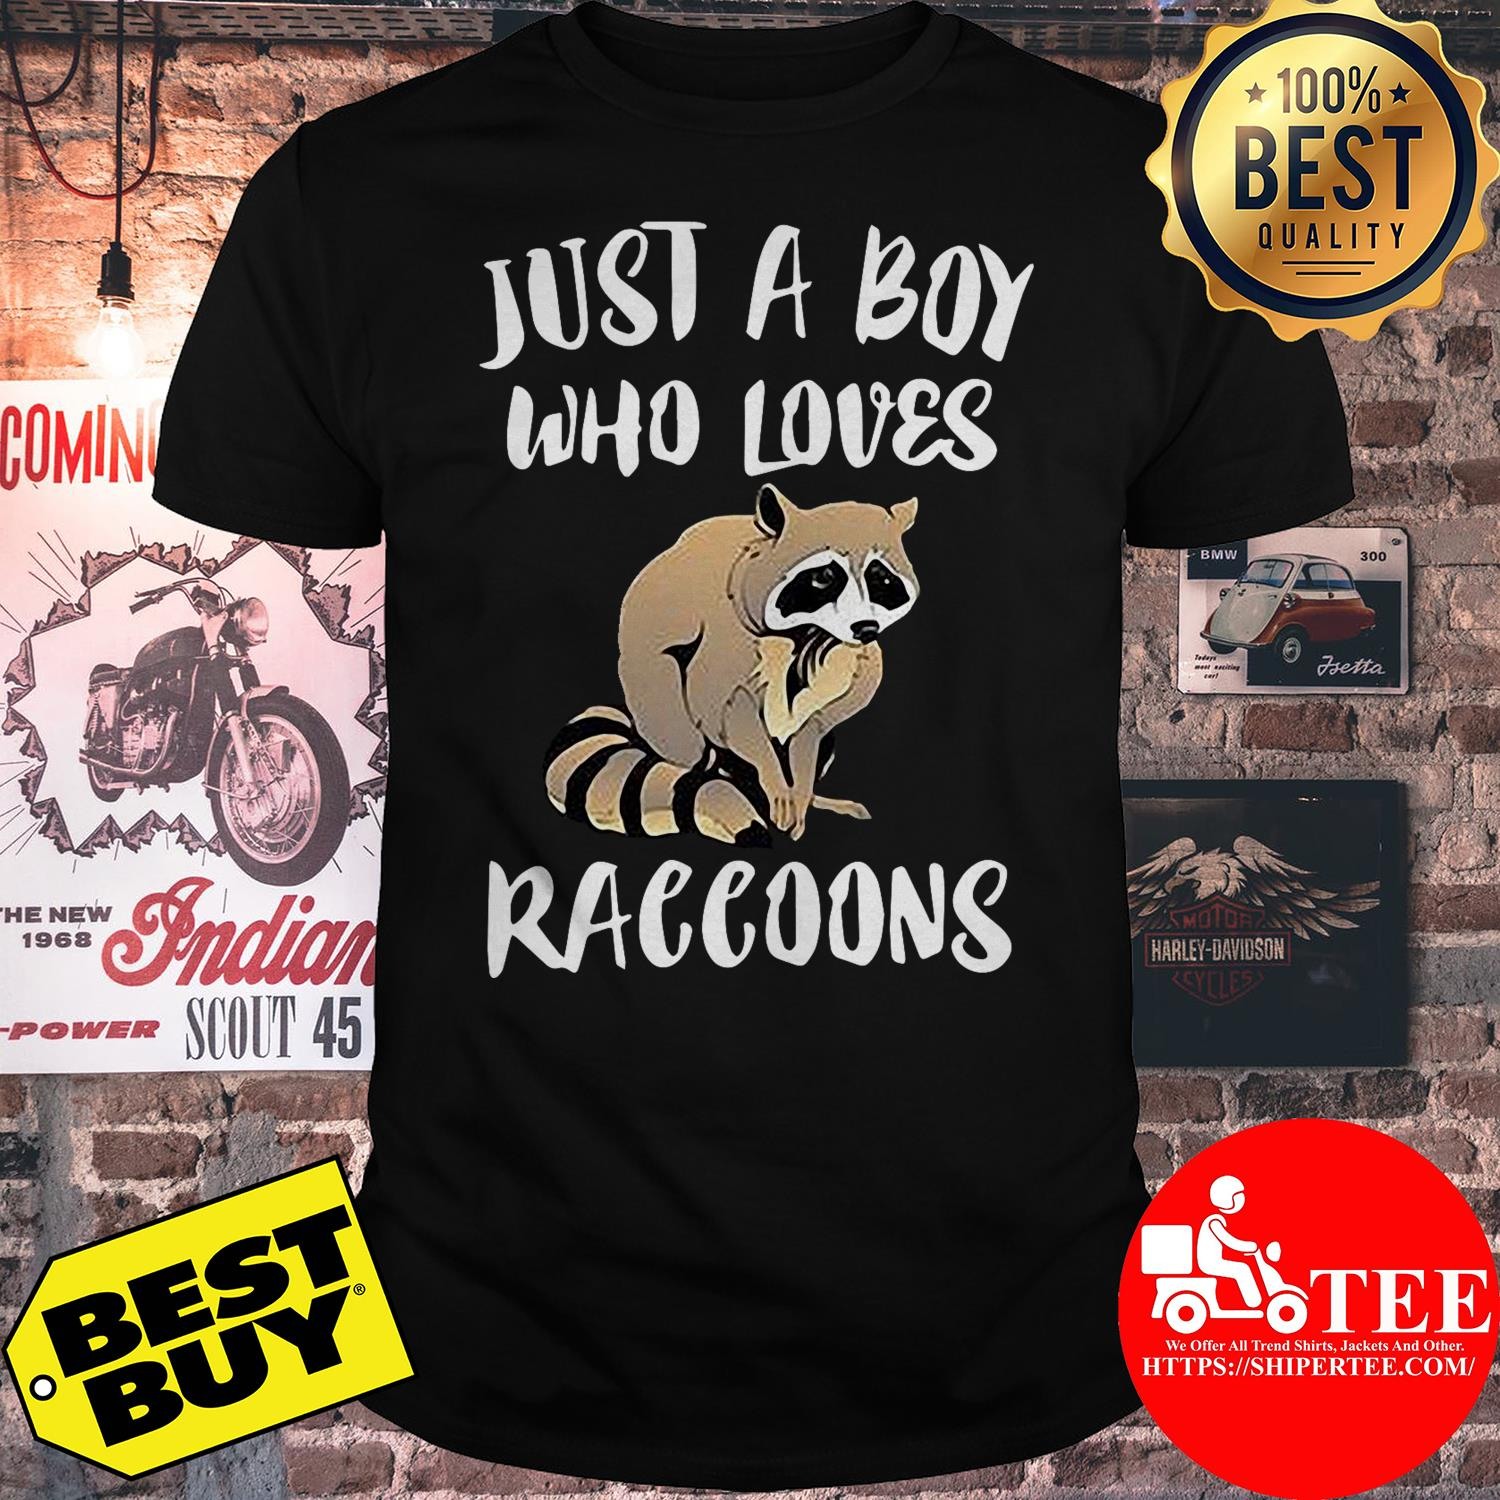 Just a boy who loves Raccoons shirt